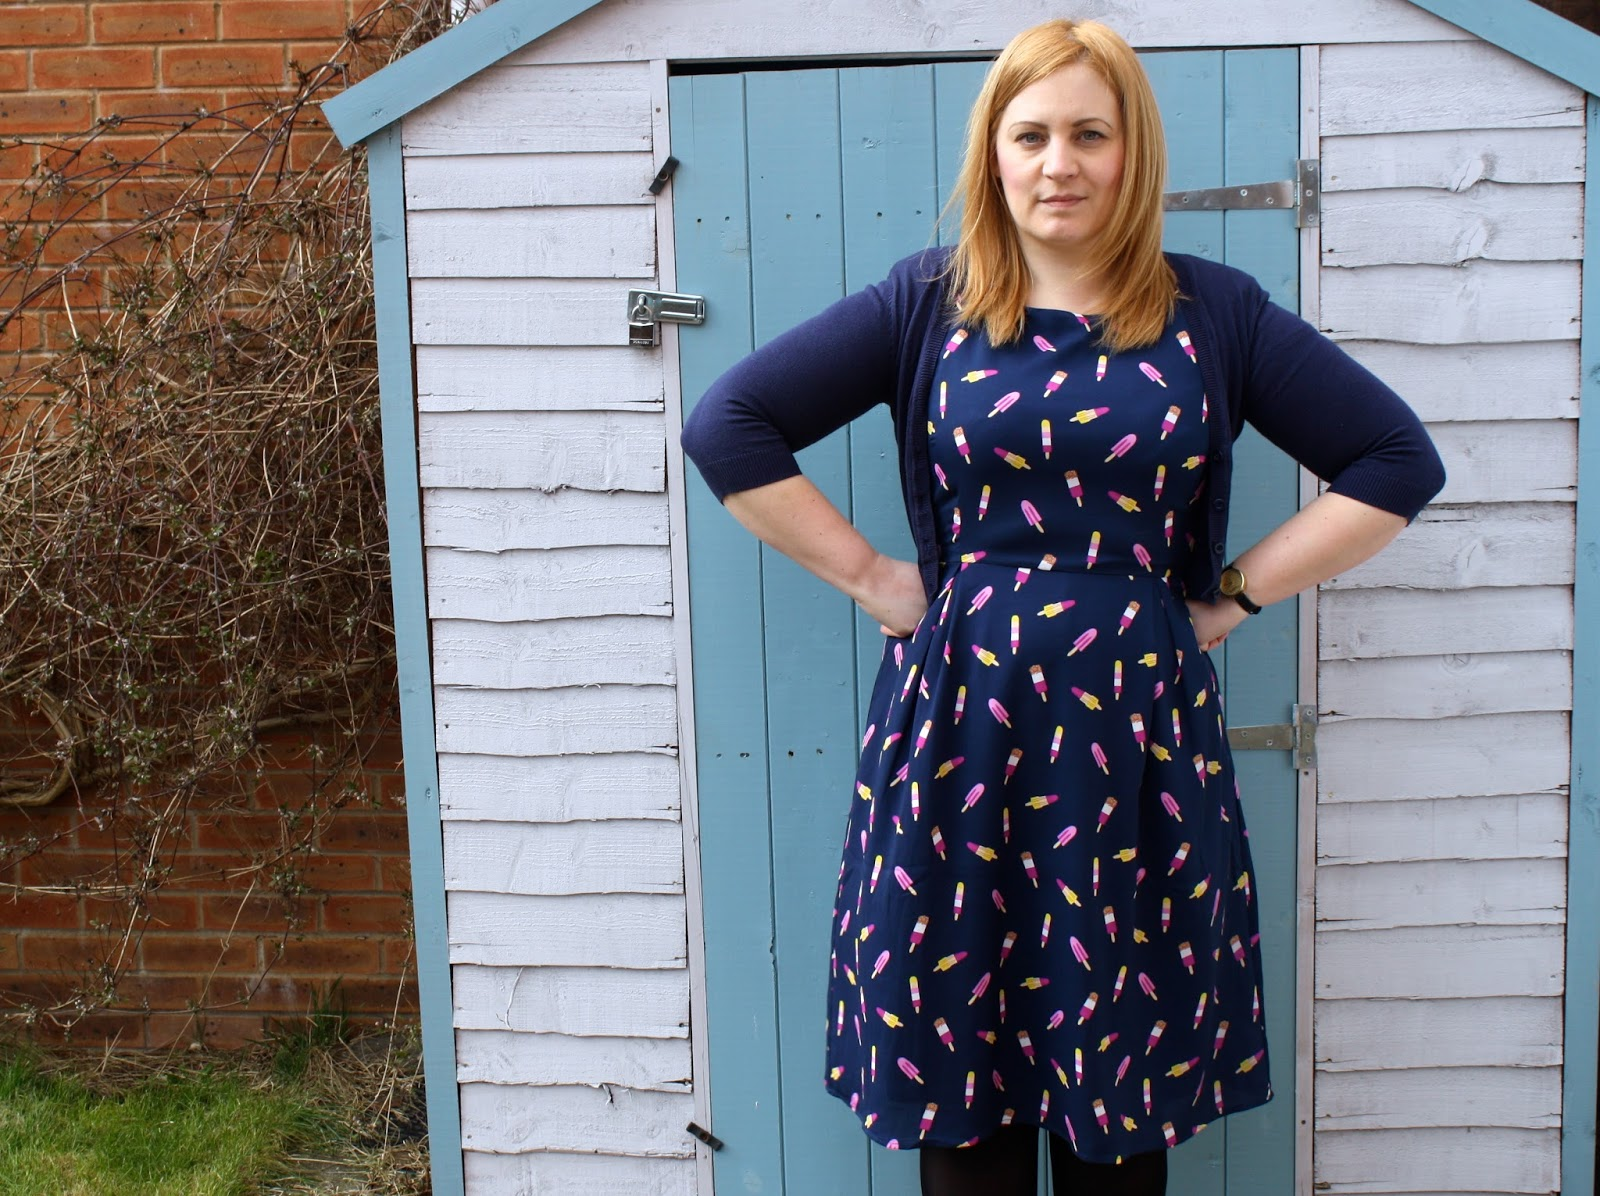 a million dresses | UK Fashion and Lifestyle Blog: March 2015